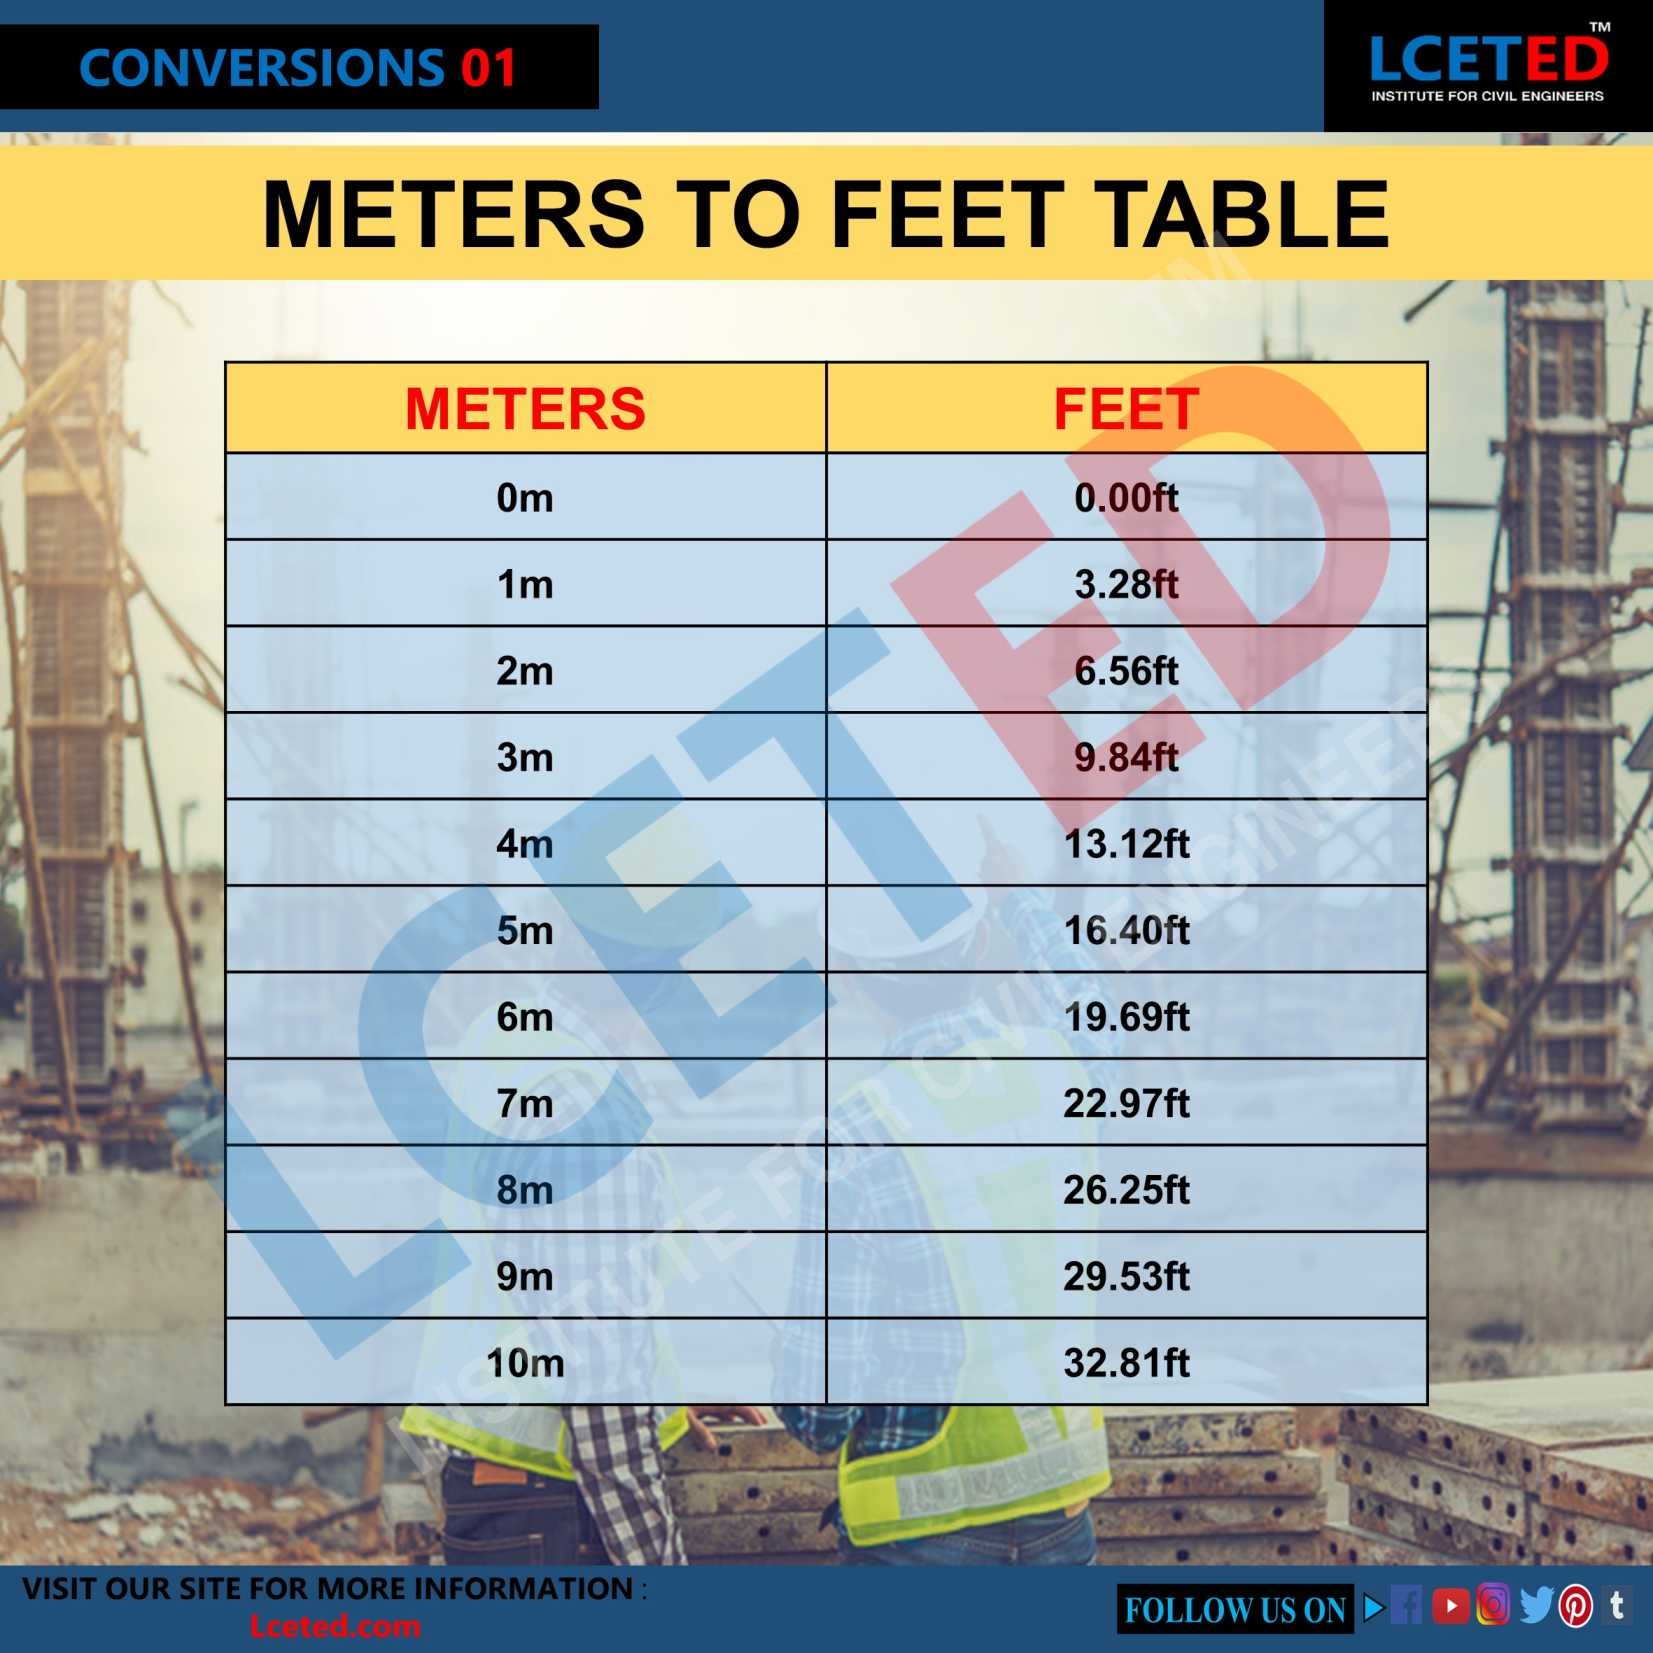 HOW TO CONVERT METERS TO FEET